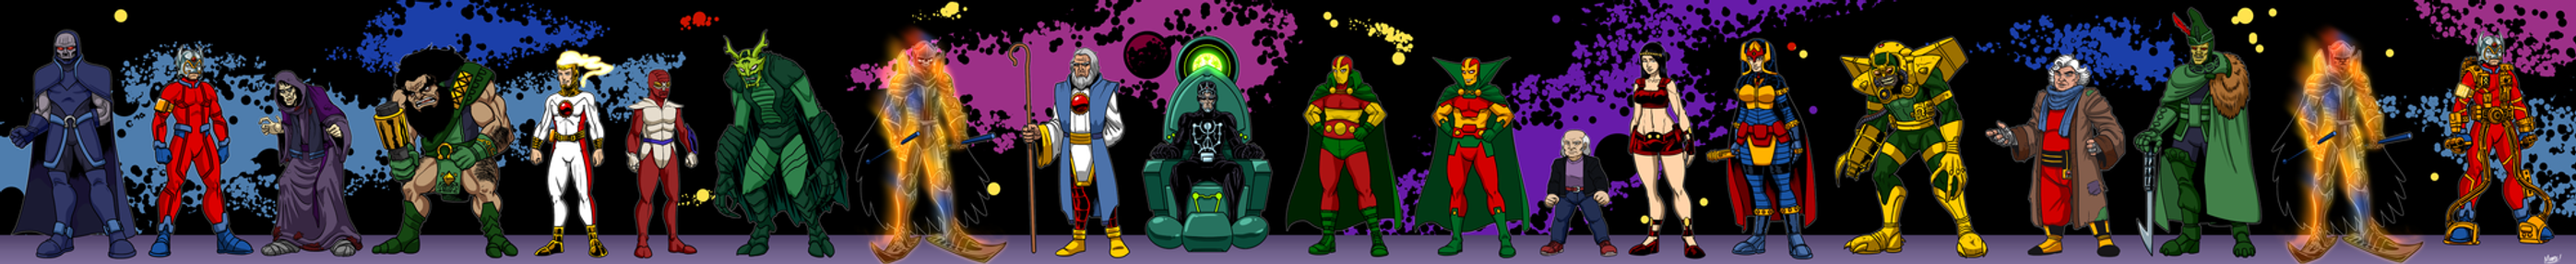 The New Gods Redesigns - Season 1 by SeanRM